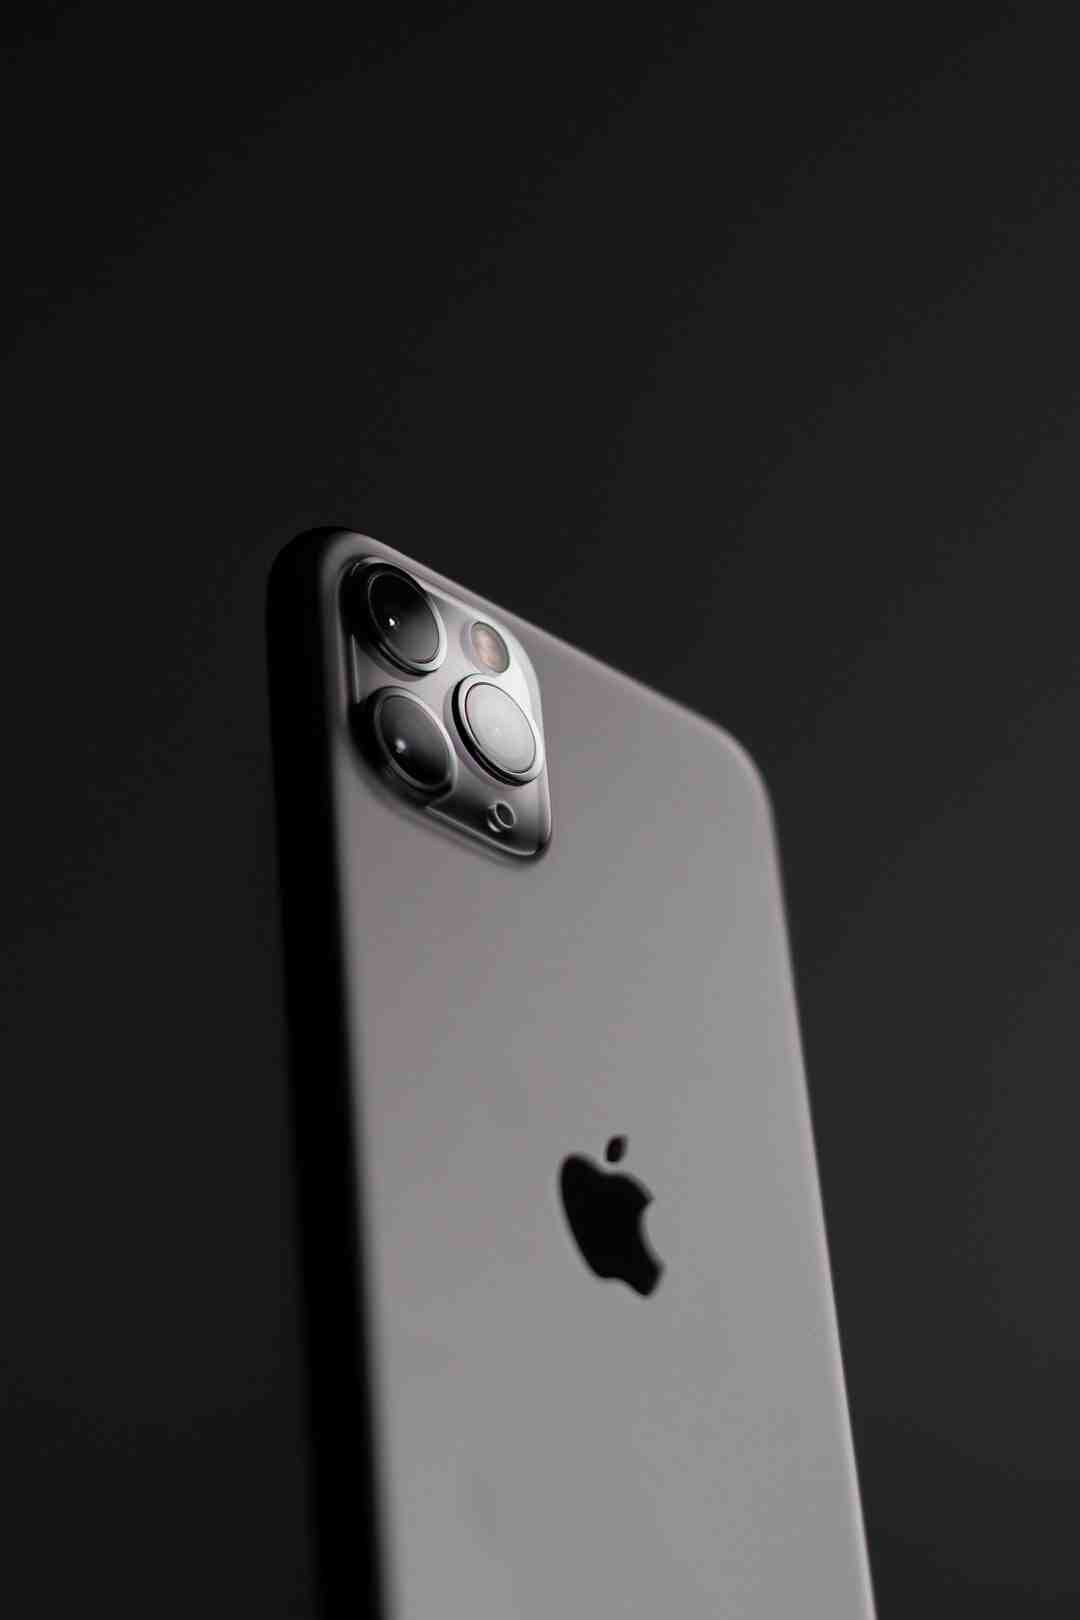 Does iPhone 11 Pro Max have 128GB?